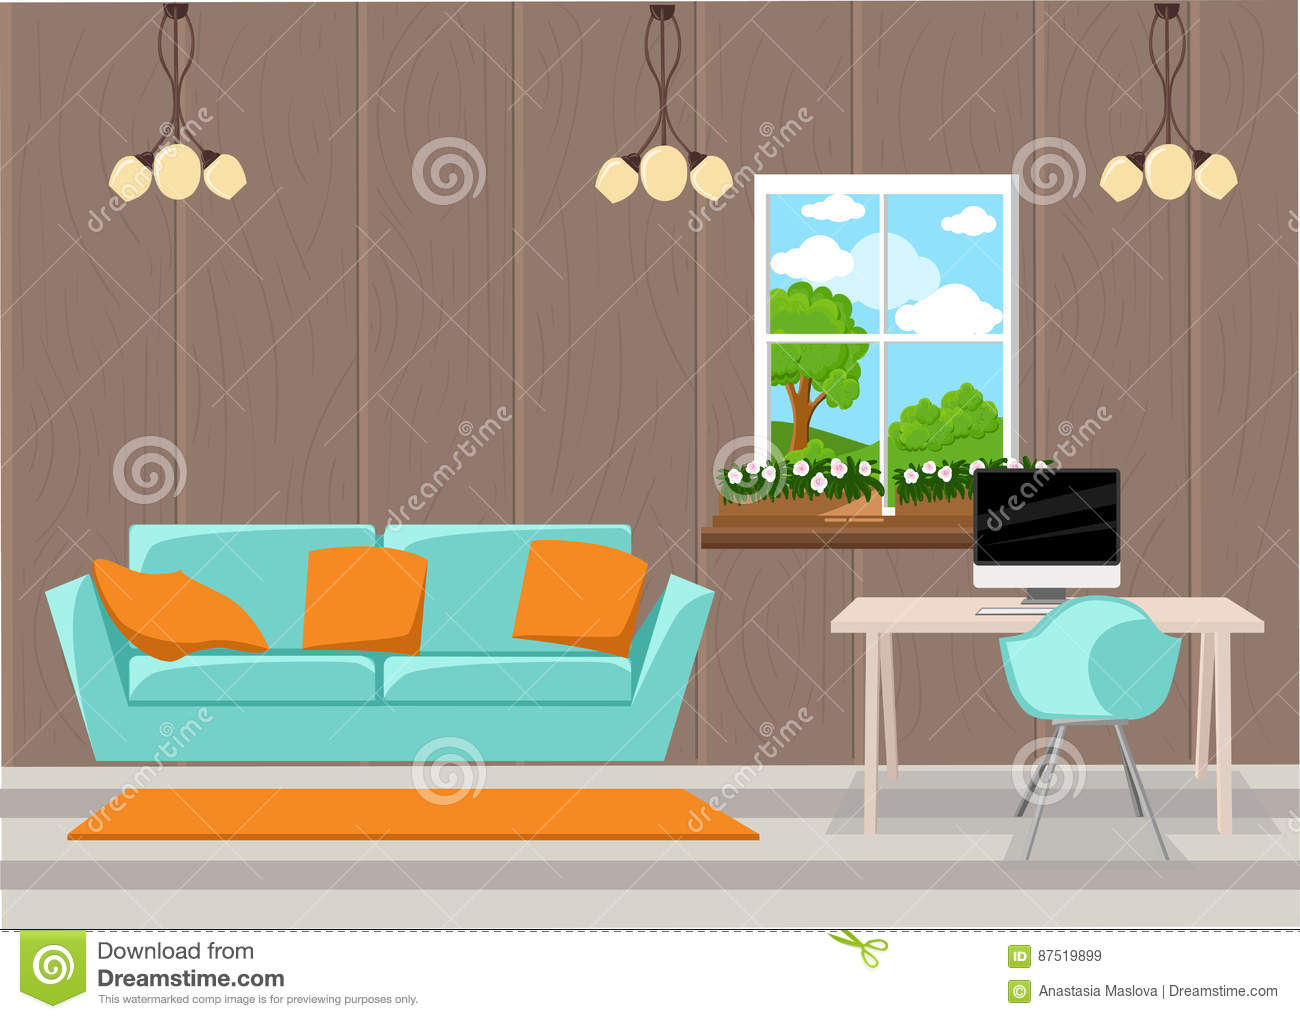 design elements living room furniture in mid century modern style